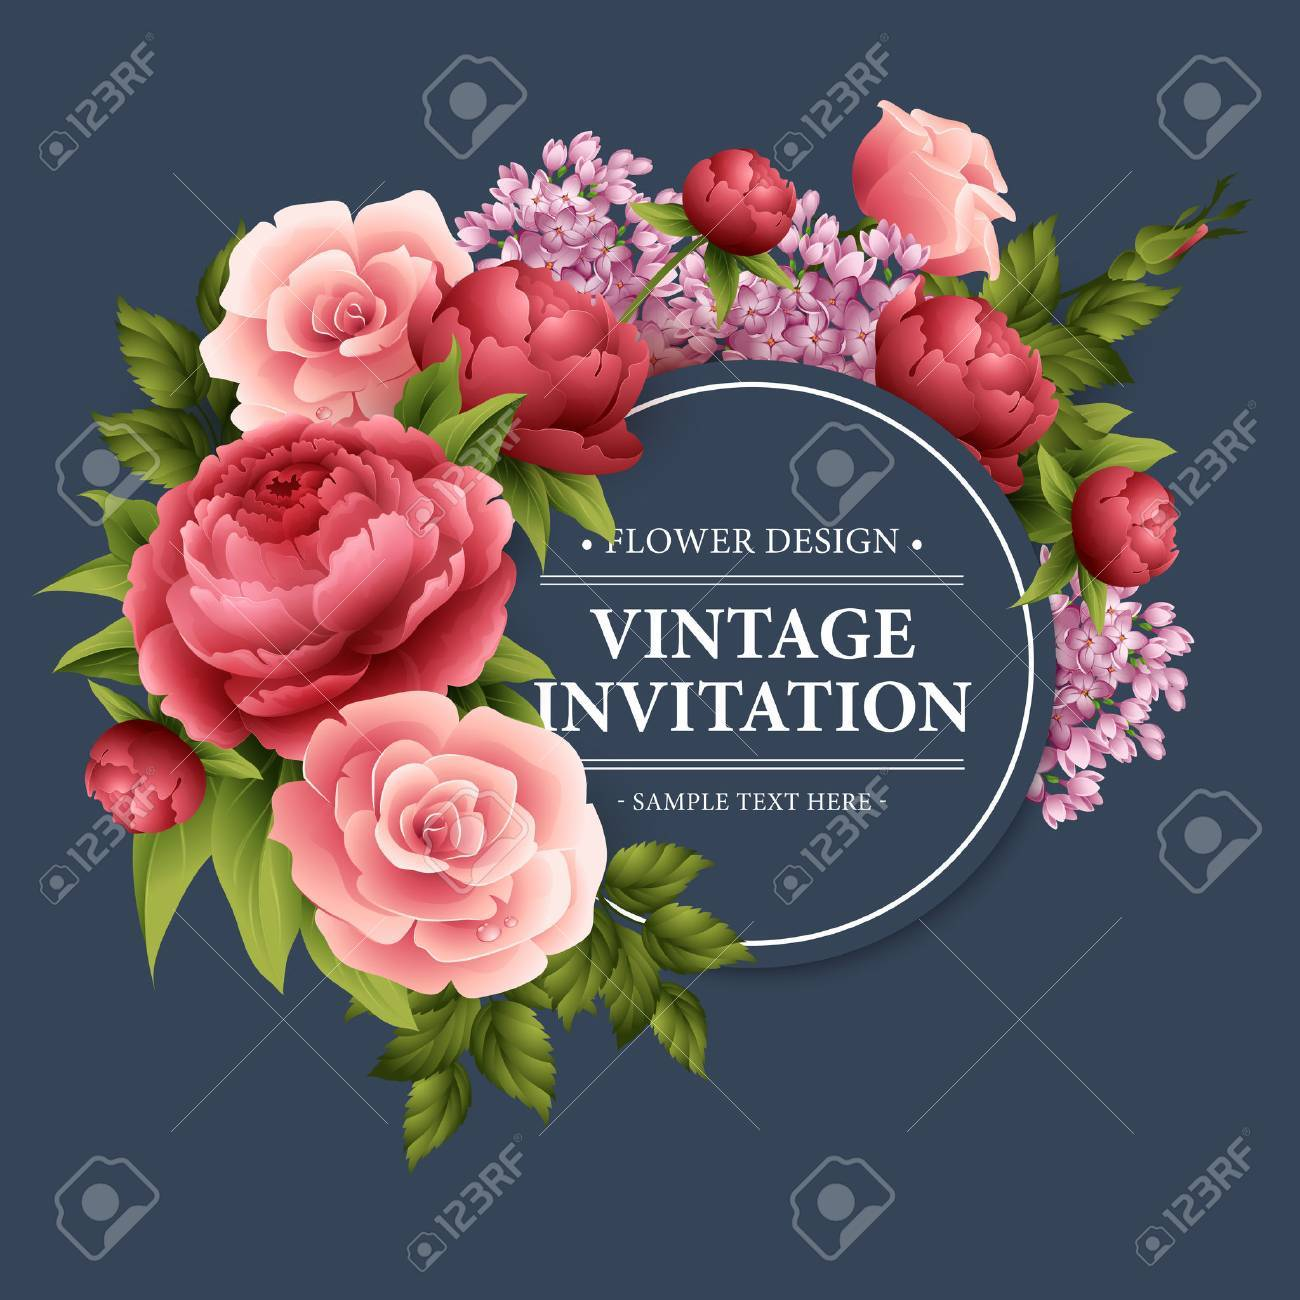 Vintage Greeting Card With Blooming Flowers. Royalty Free Cliparts ...